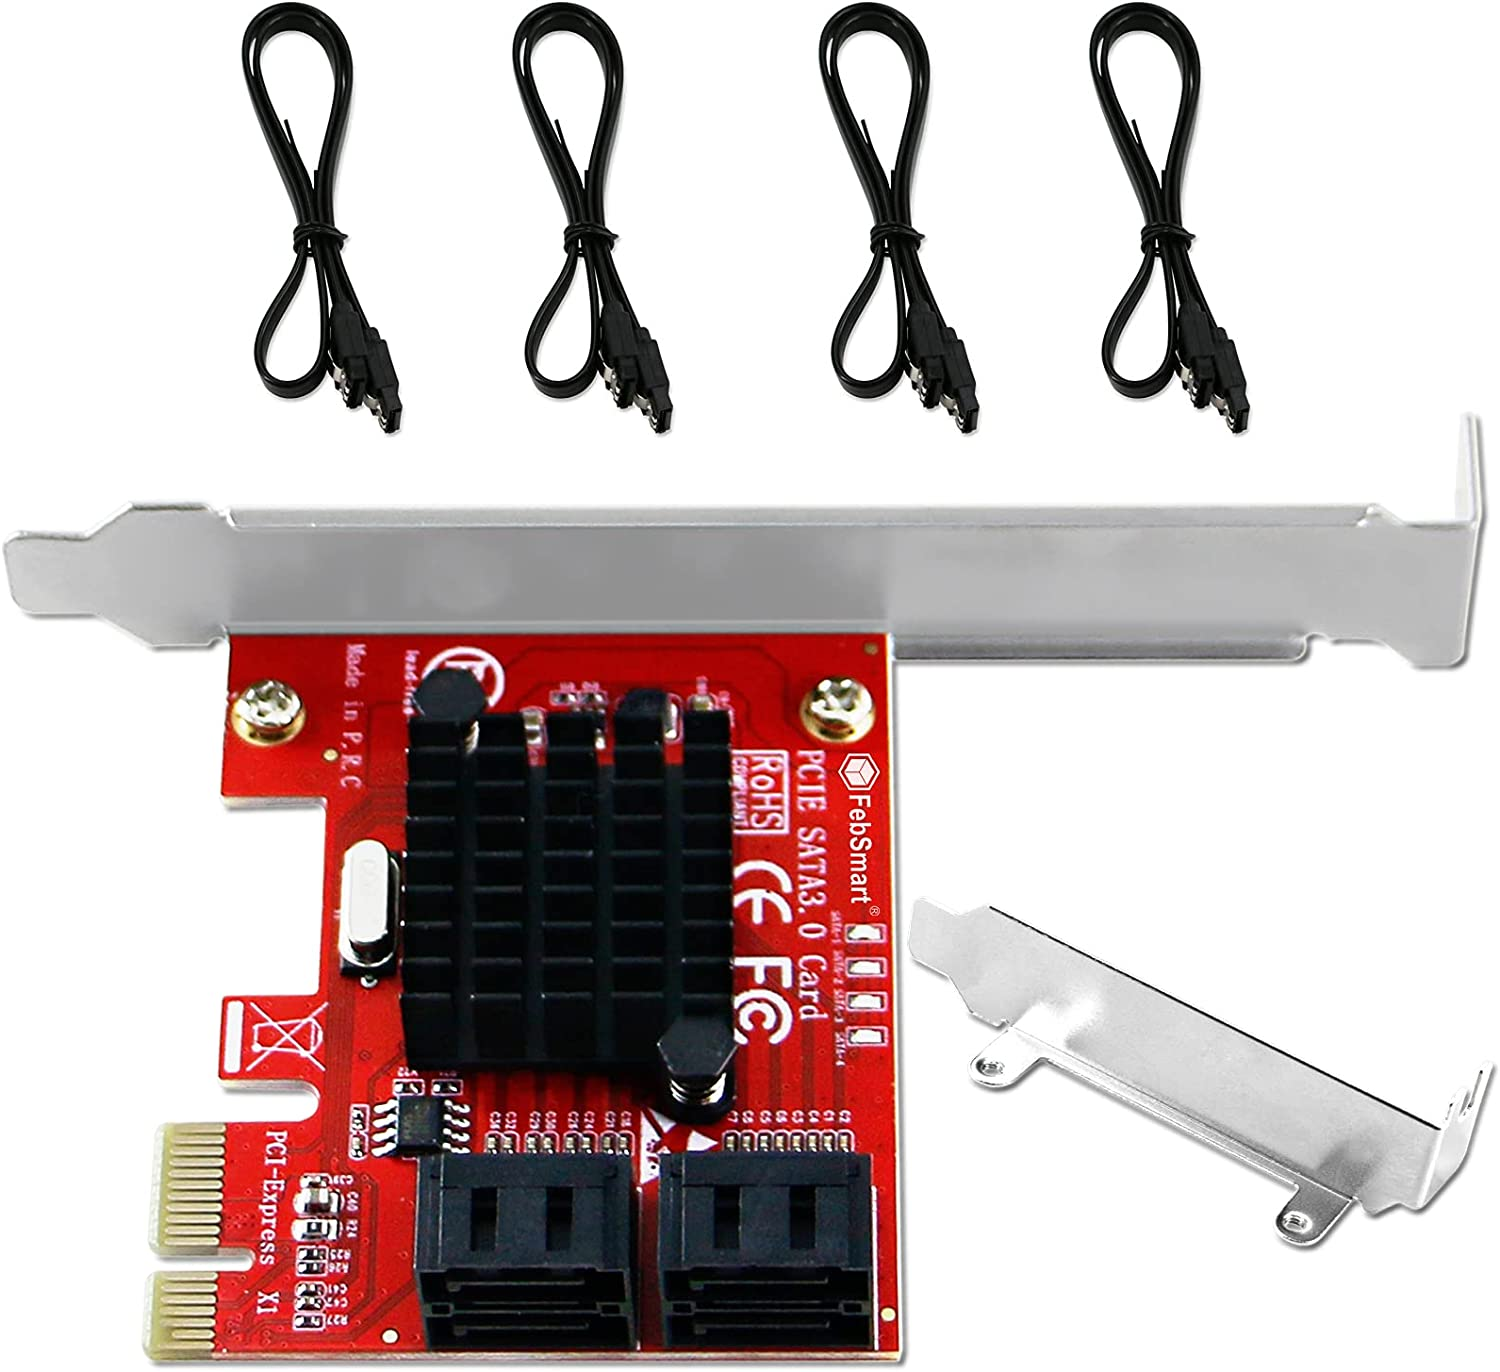 FebSmart PCIE to 4-Ports SATA Genuine 3.0 Card Speed Max Expansion Quality inspection 6Gbps